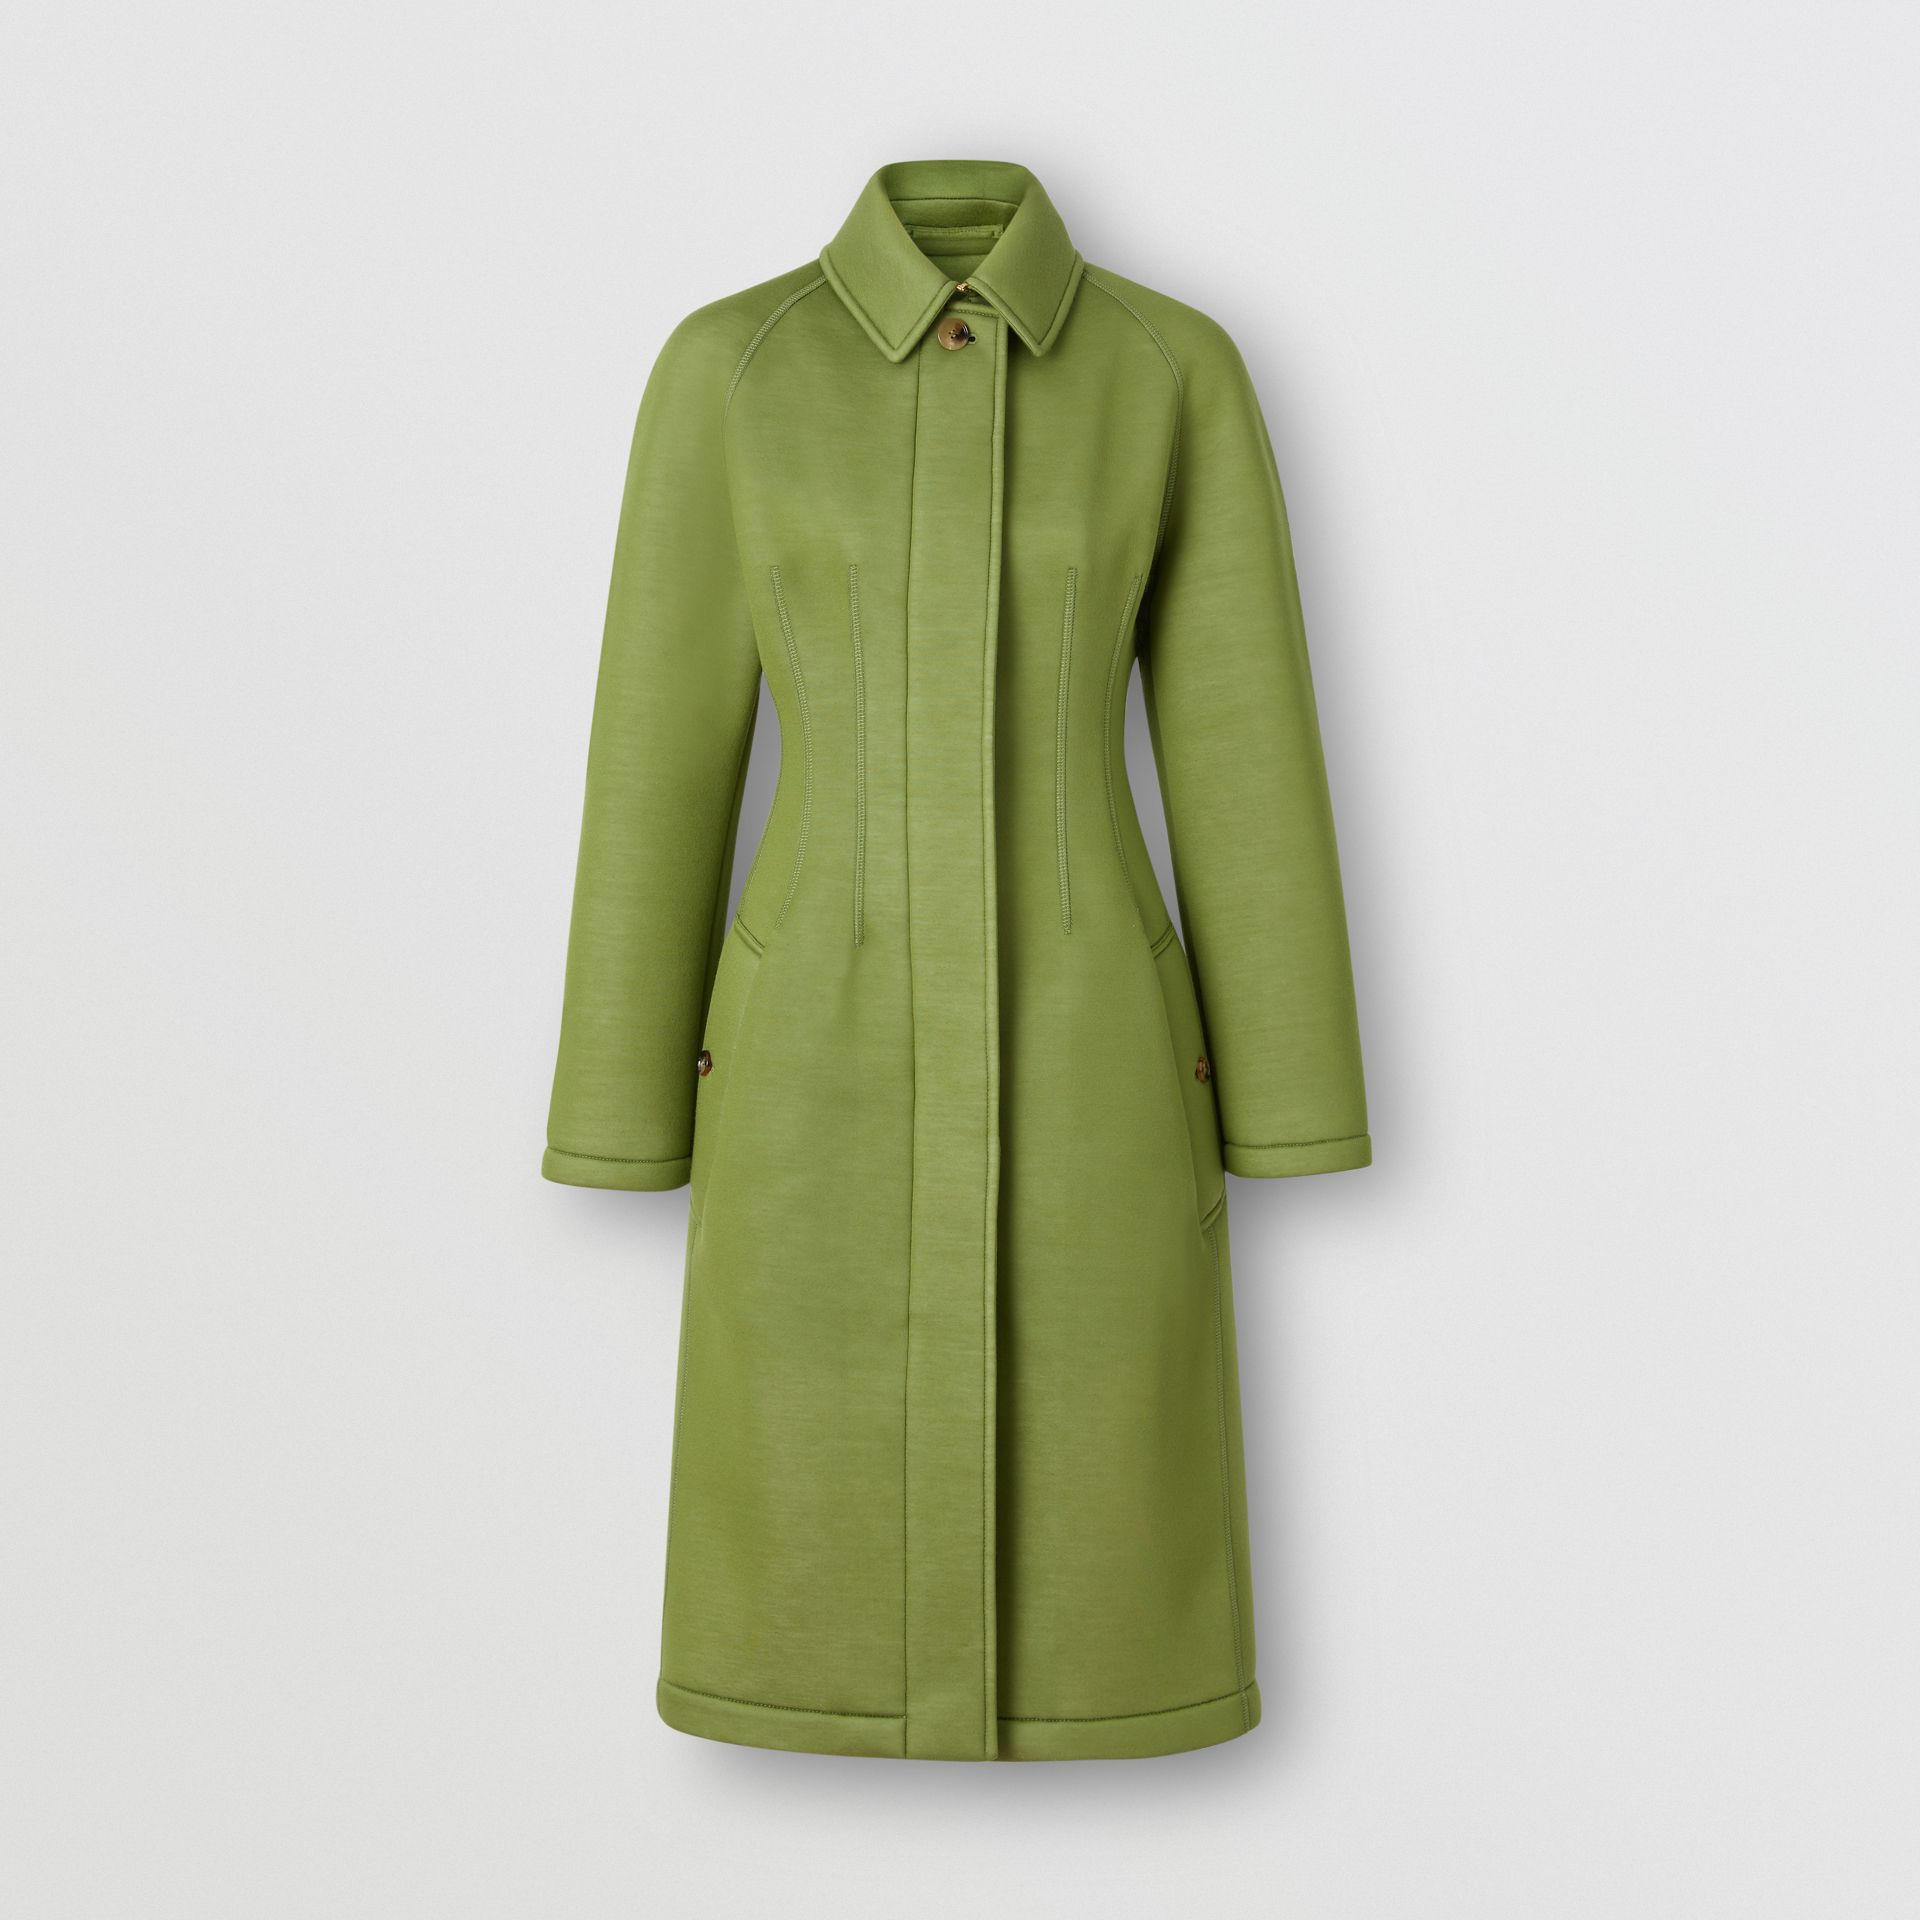 Bonded Neoprene Tailored Car Coat in Cedar Green - Women | Burberry Hong Kong S.A.R - gallery image 3